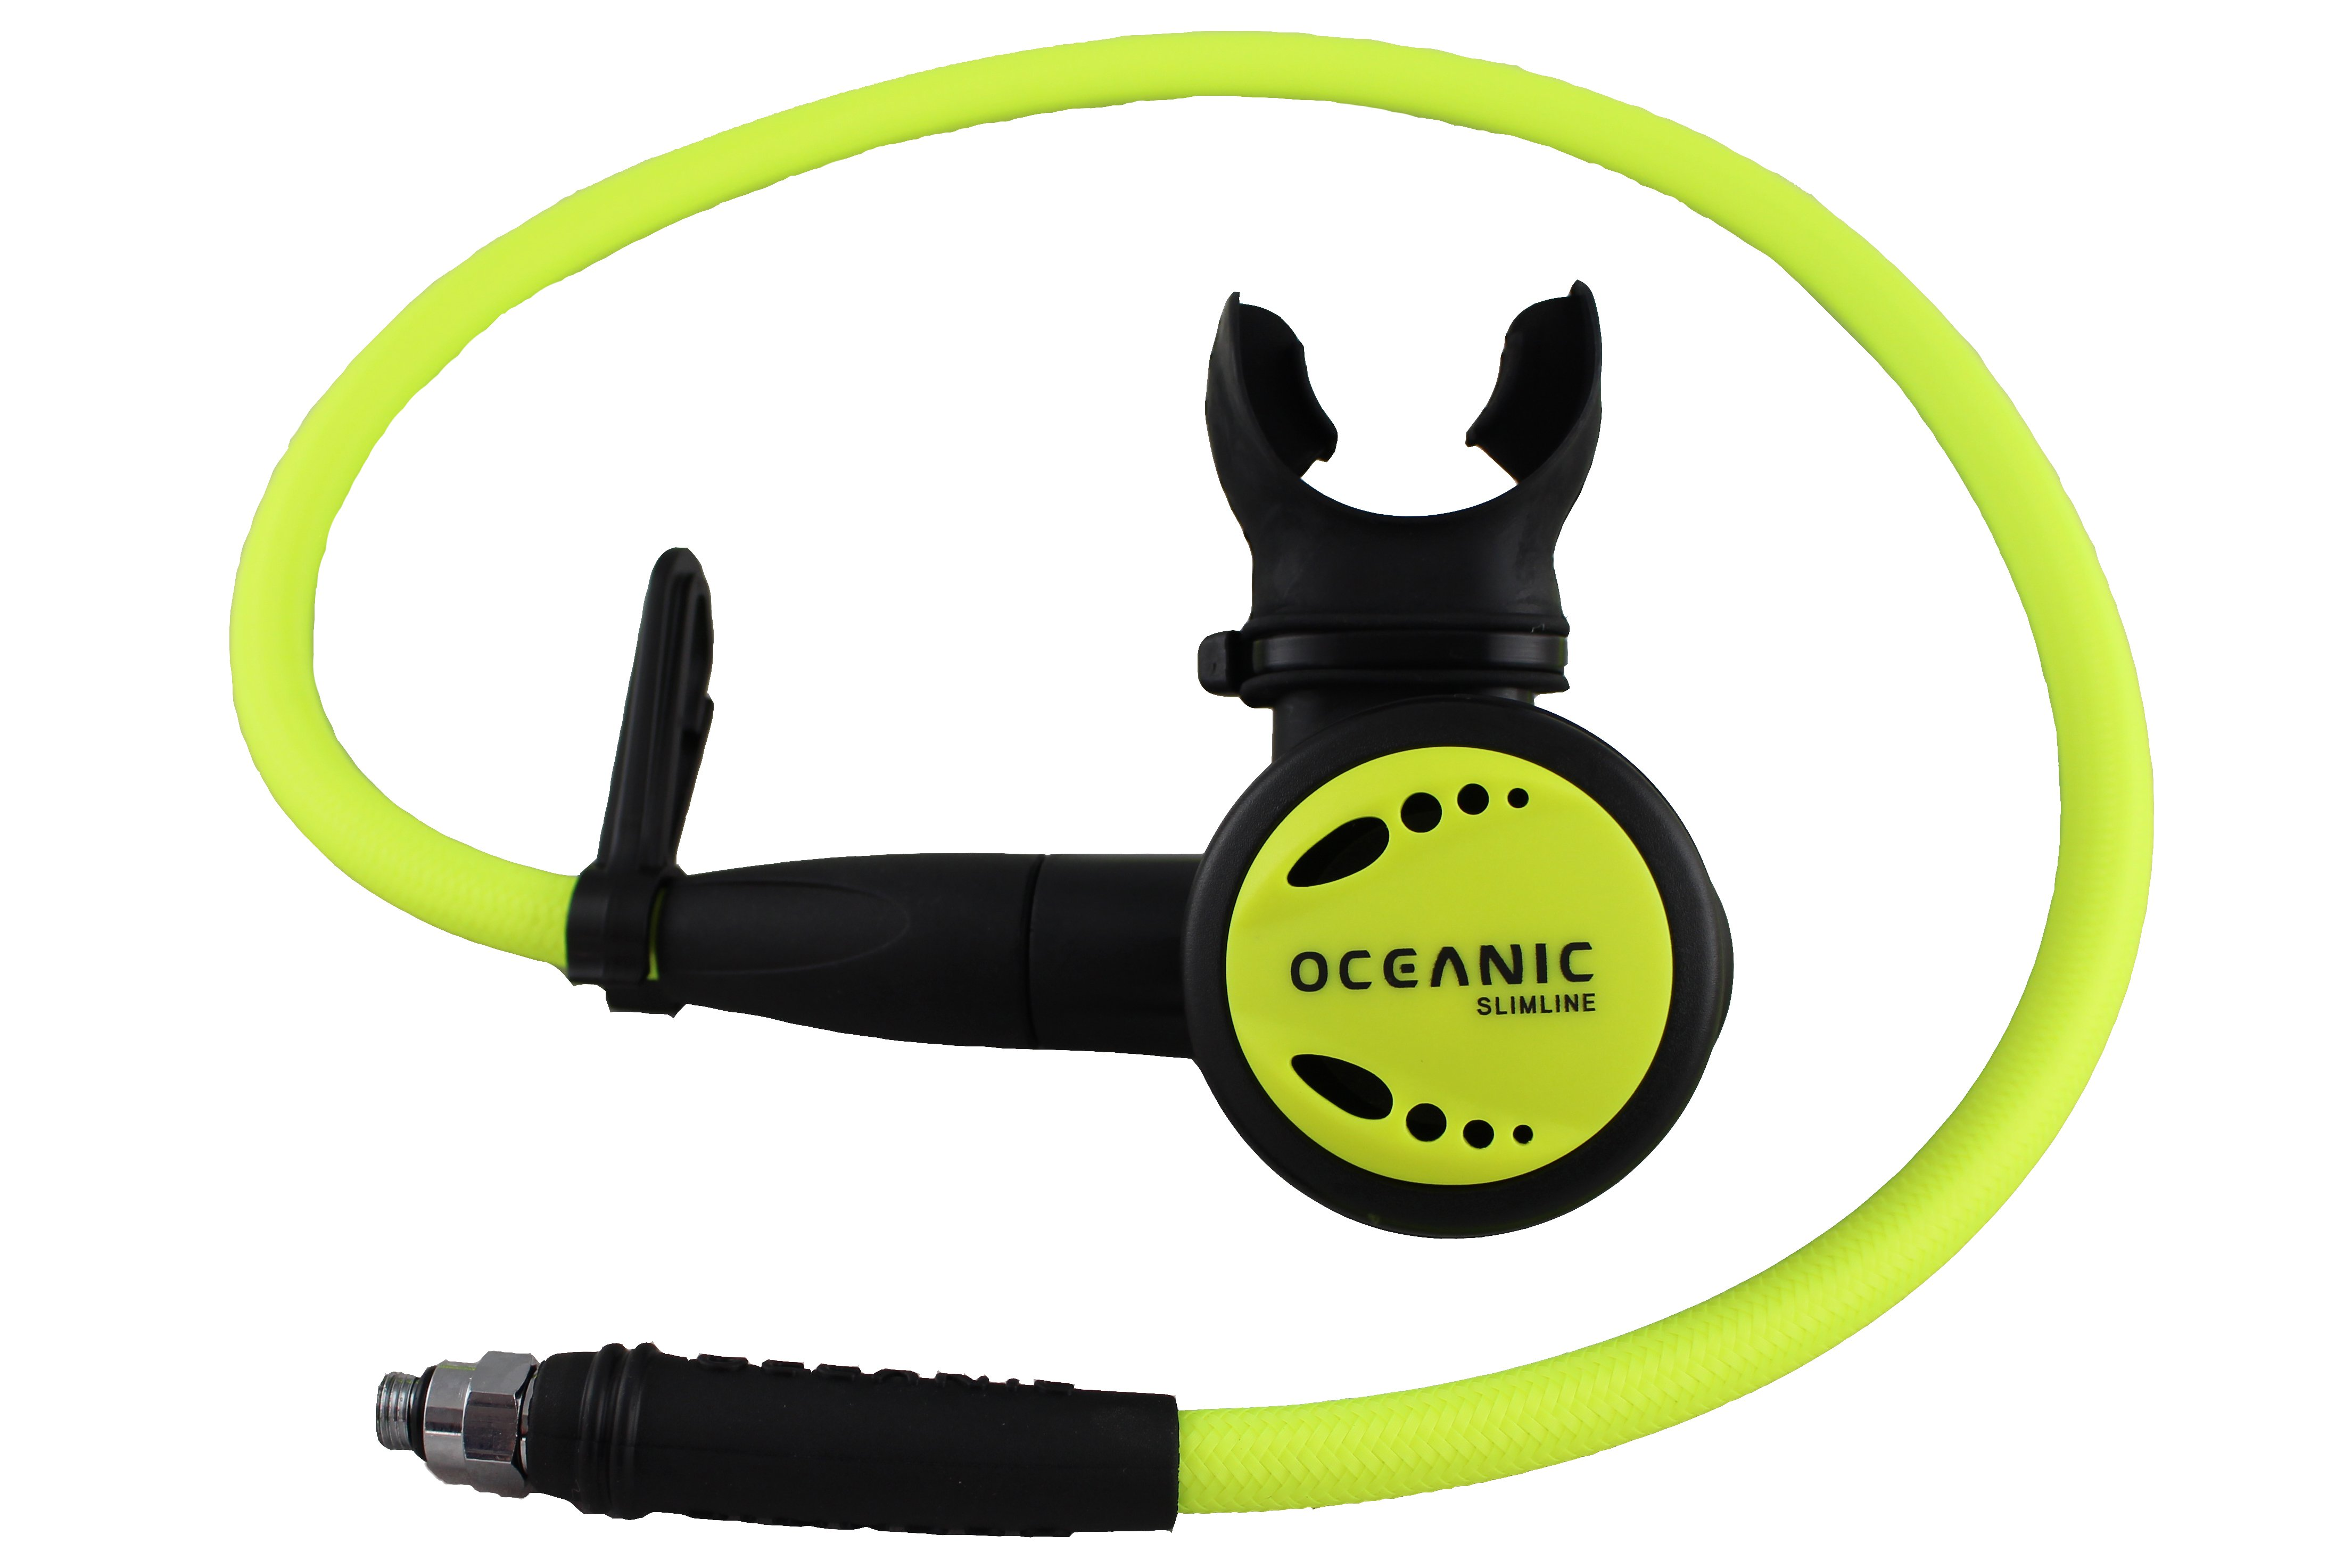 Oceanic Slimline Alternate Air Source